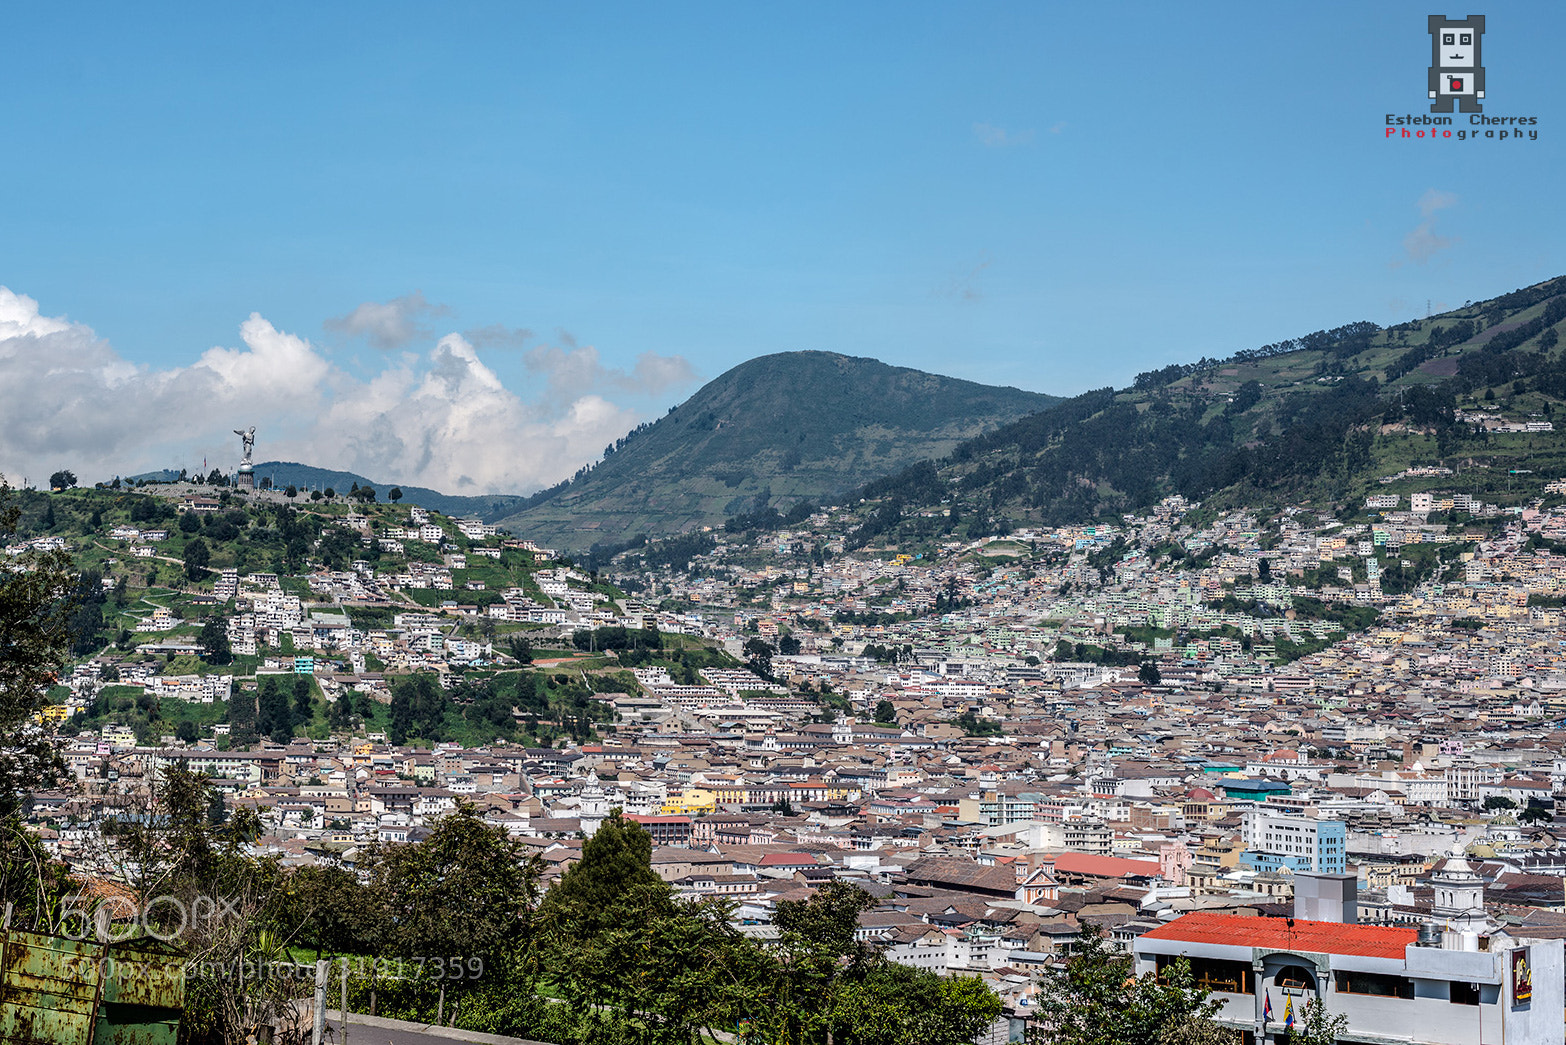 Photograph Quito, from Itchimbia park by Esteban Cherres on 500px